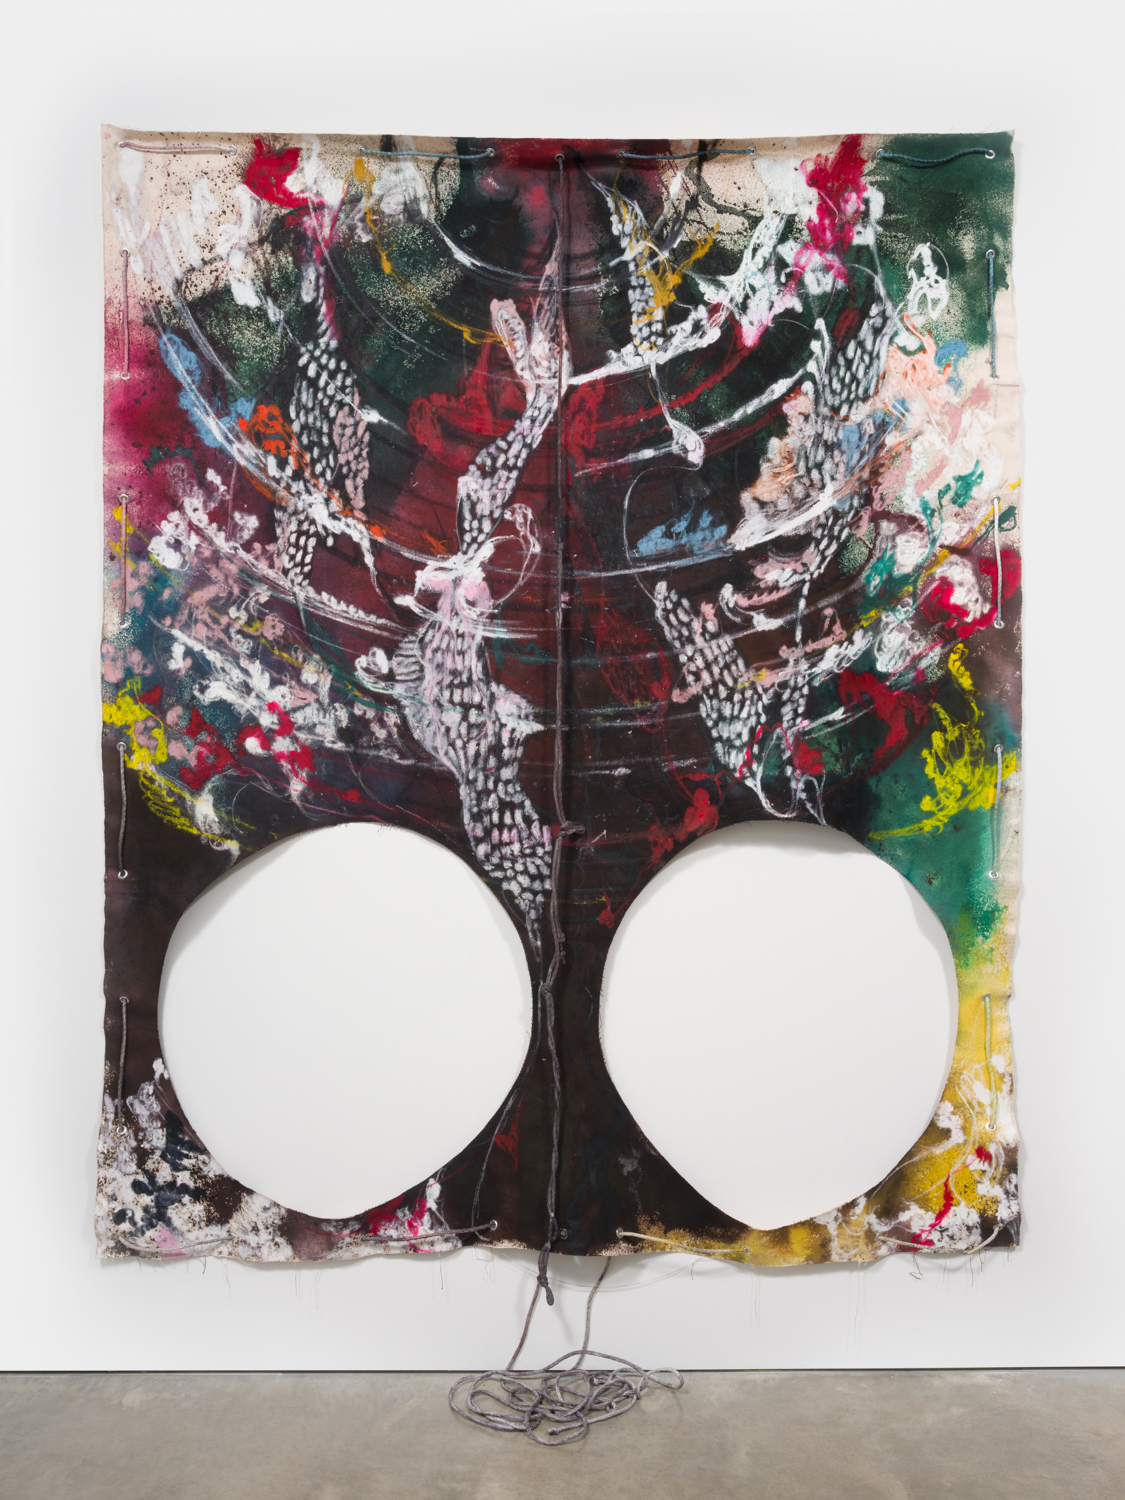 NaotakaHiro Untitled (Sway), 2018 Canvas, fabric dye, oil pastel, rope and grommets 108h x 84w in NaoH035